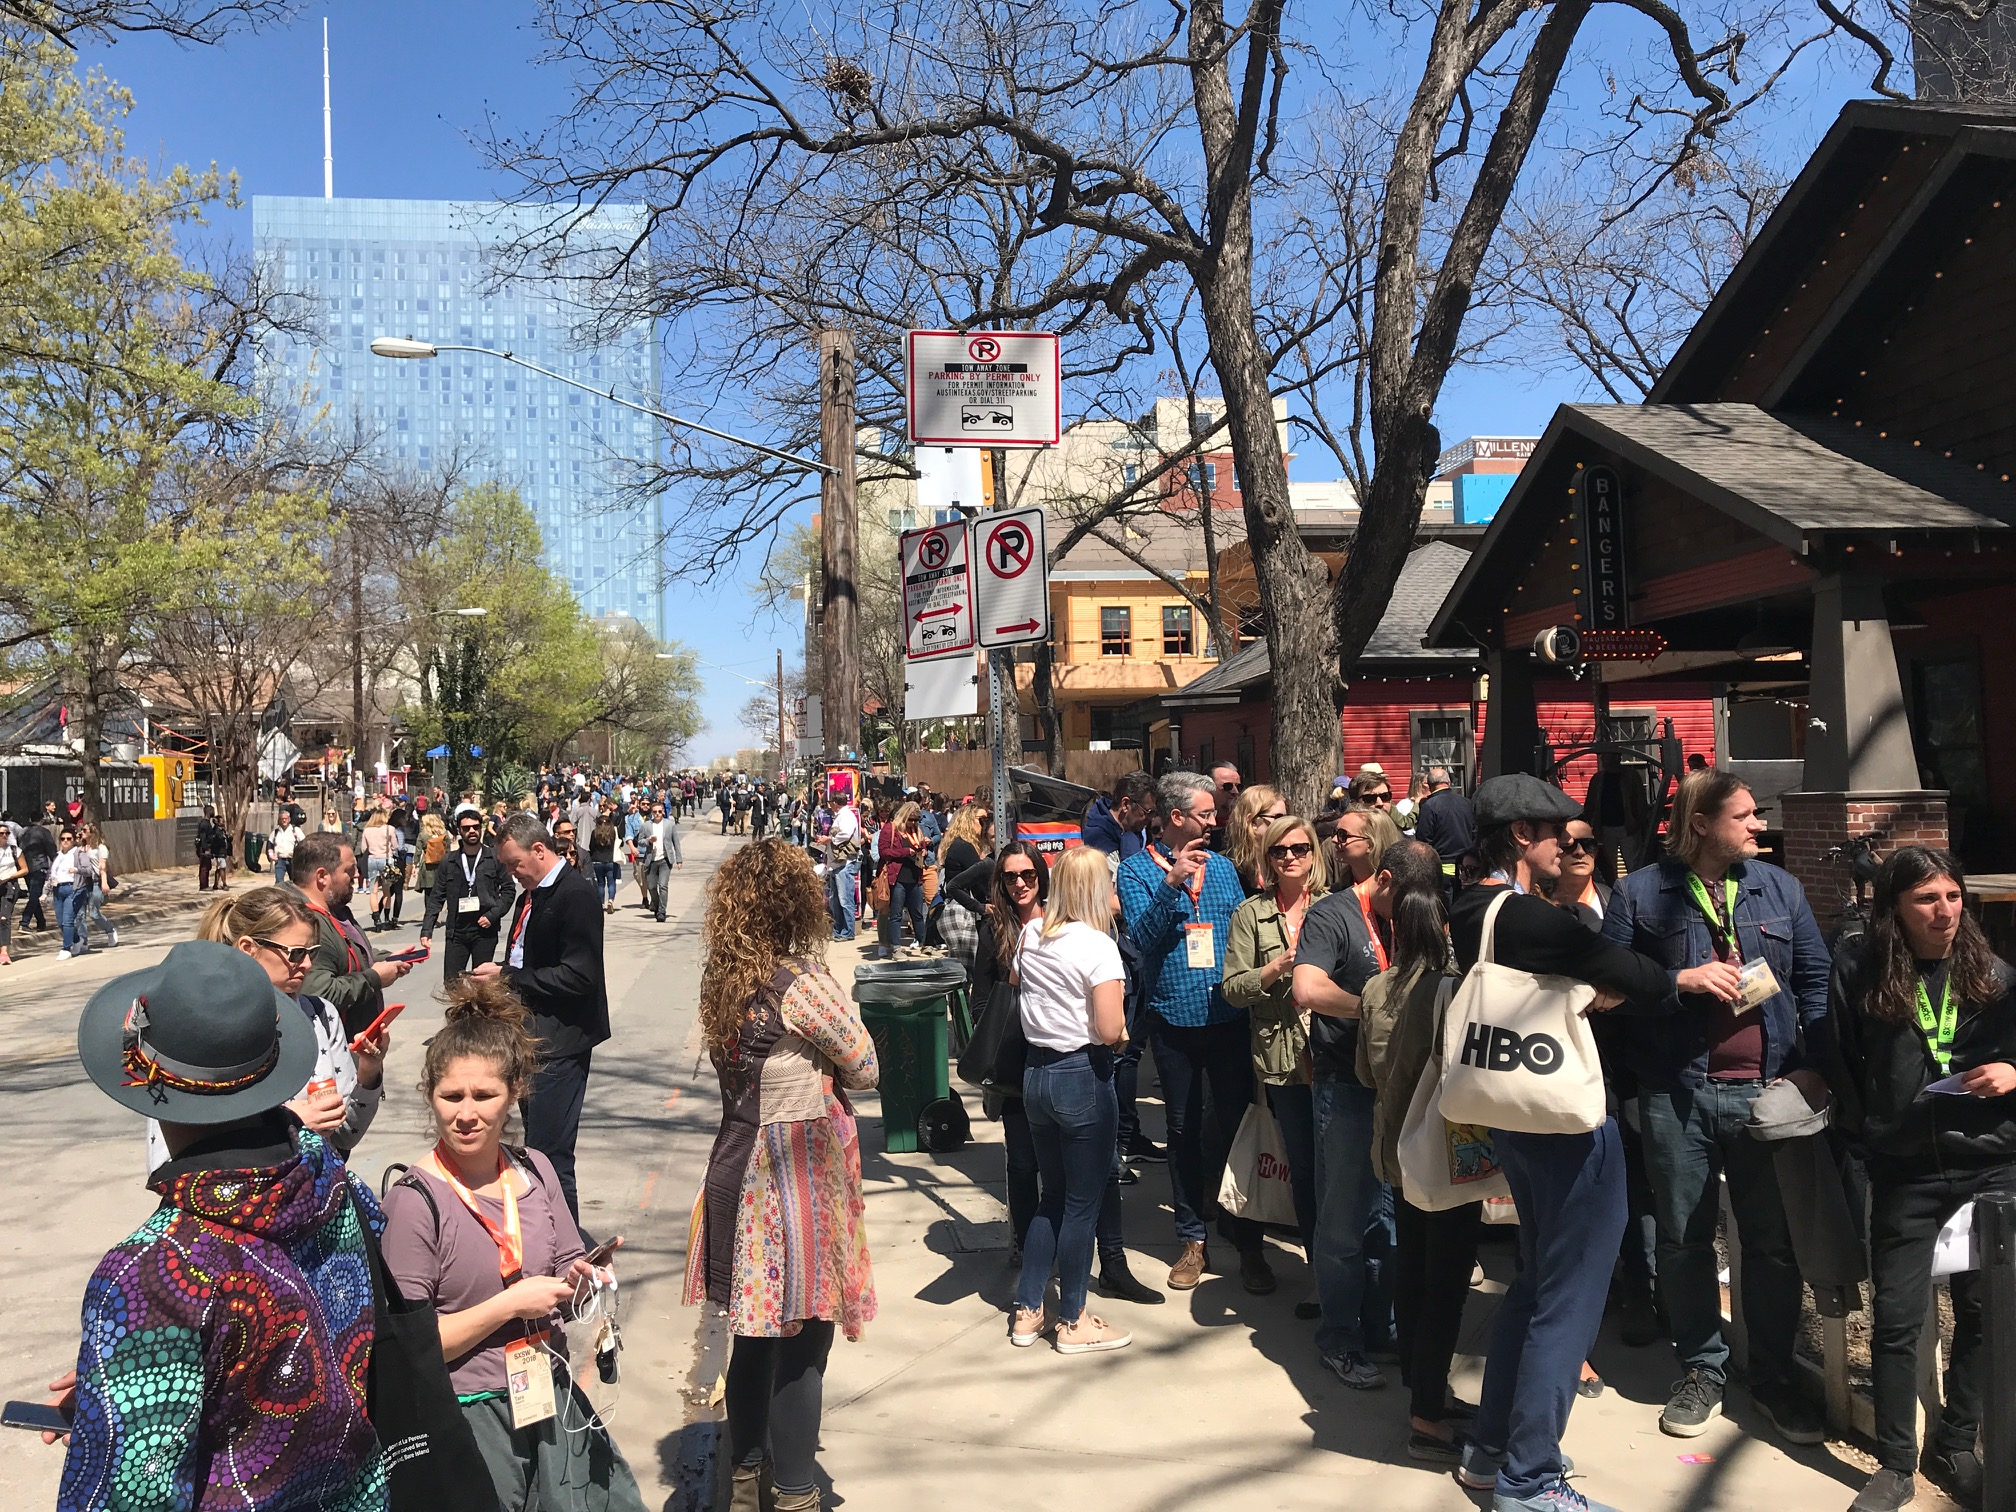 The mere mention of Hugh Jackman was enough to have half of the SXSW attendees forming an orderly queue out of sight for the chance of touching the Boy From Oz